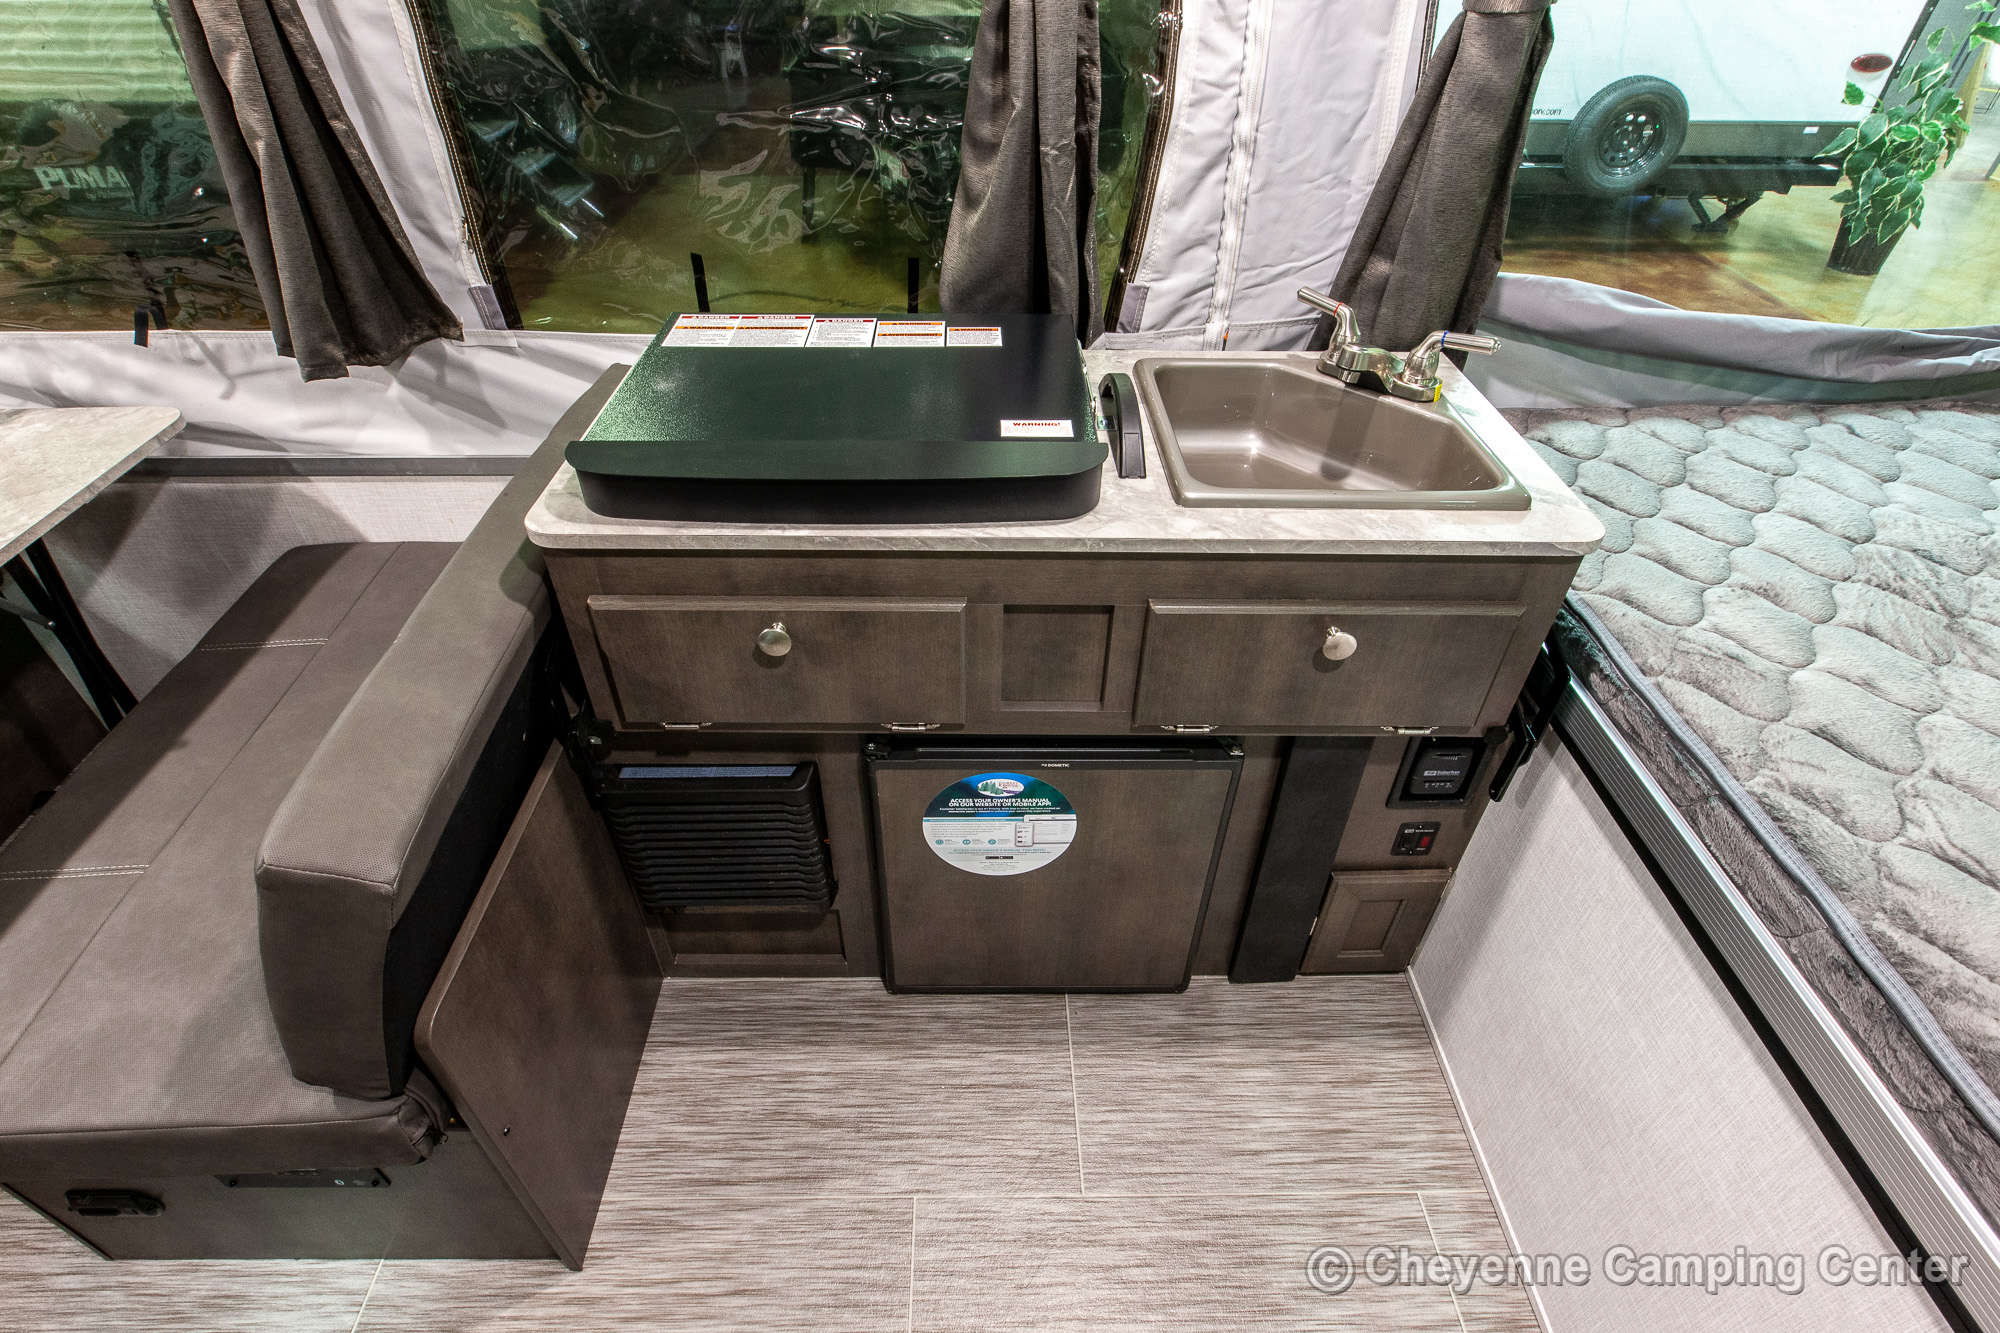 2021 Forest River Flagstaff Sports Enthusiast 206STSE Folding Camper Interior Image